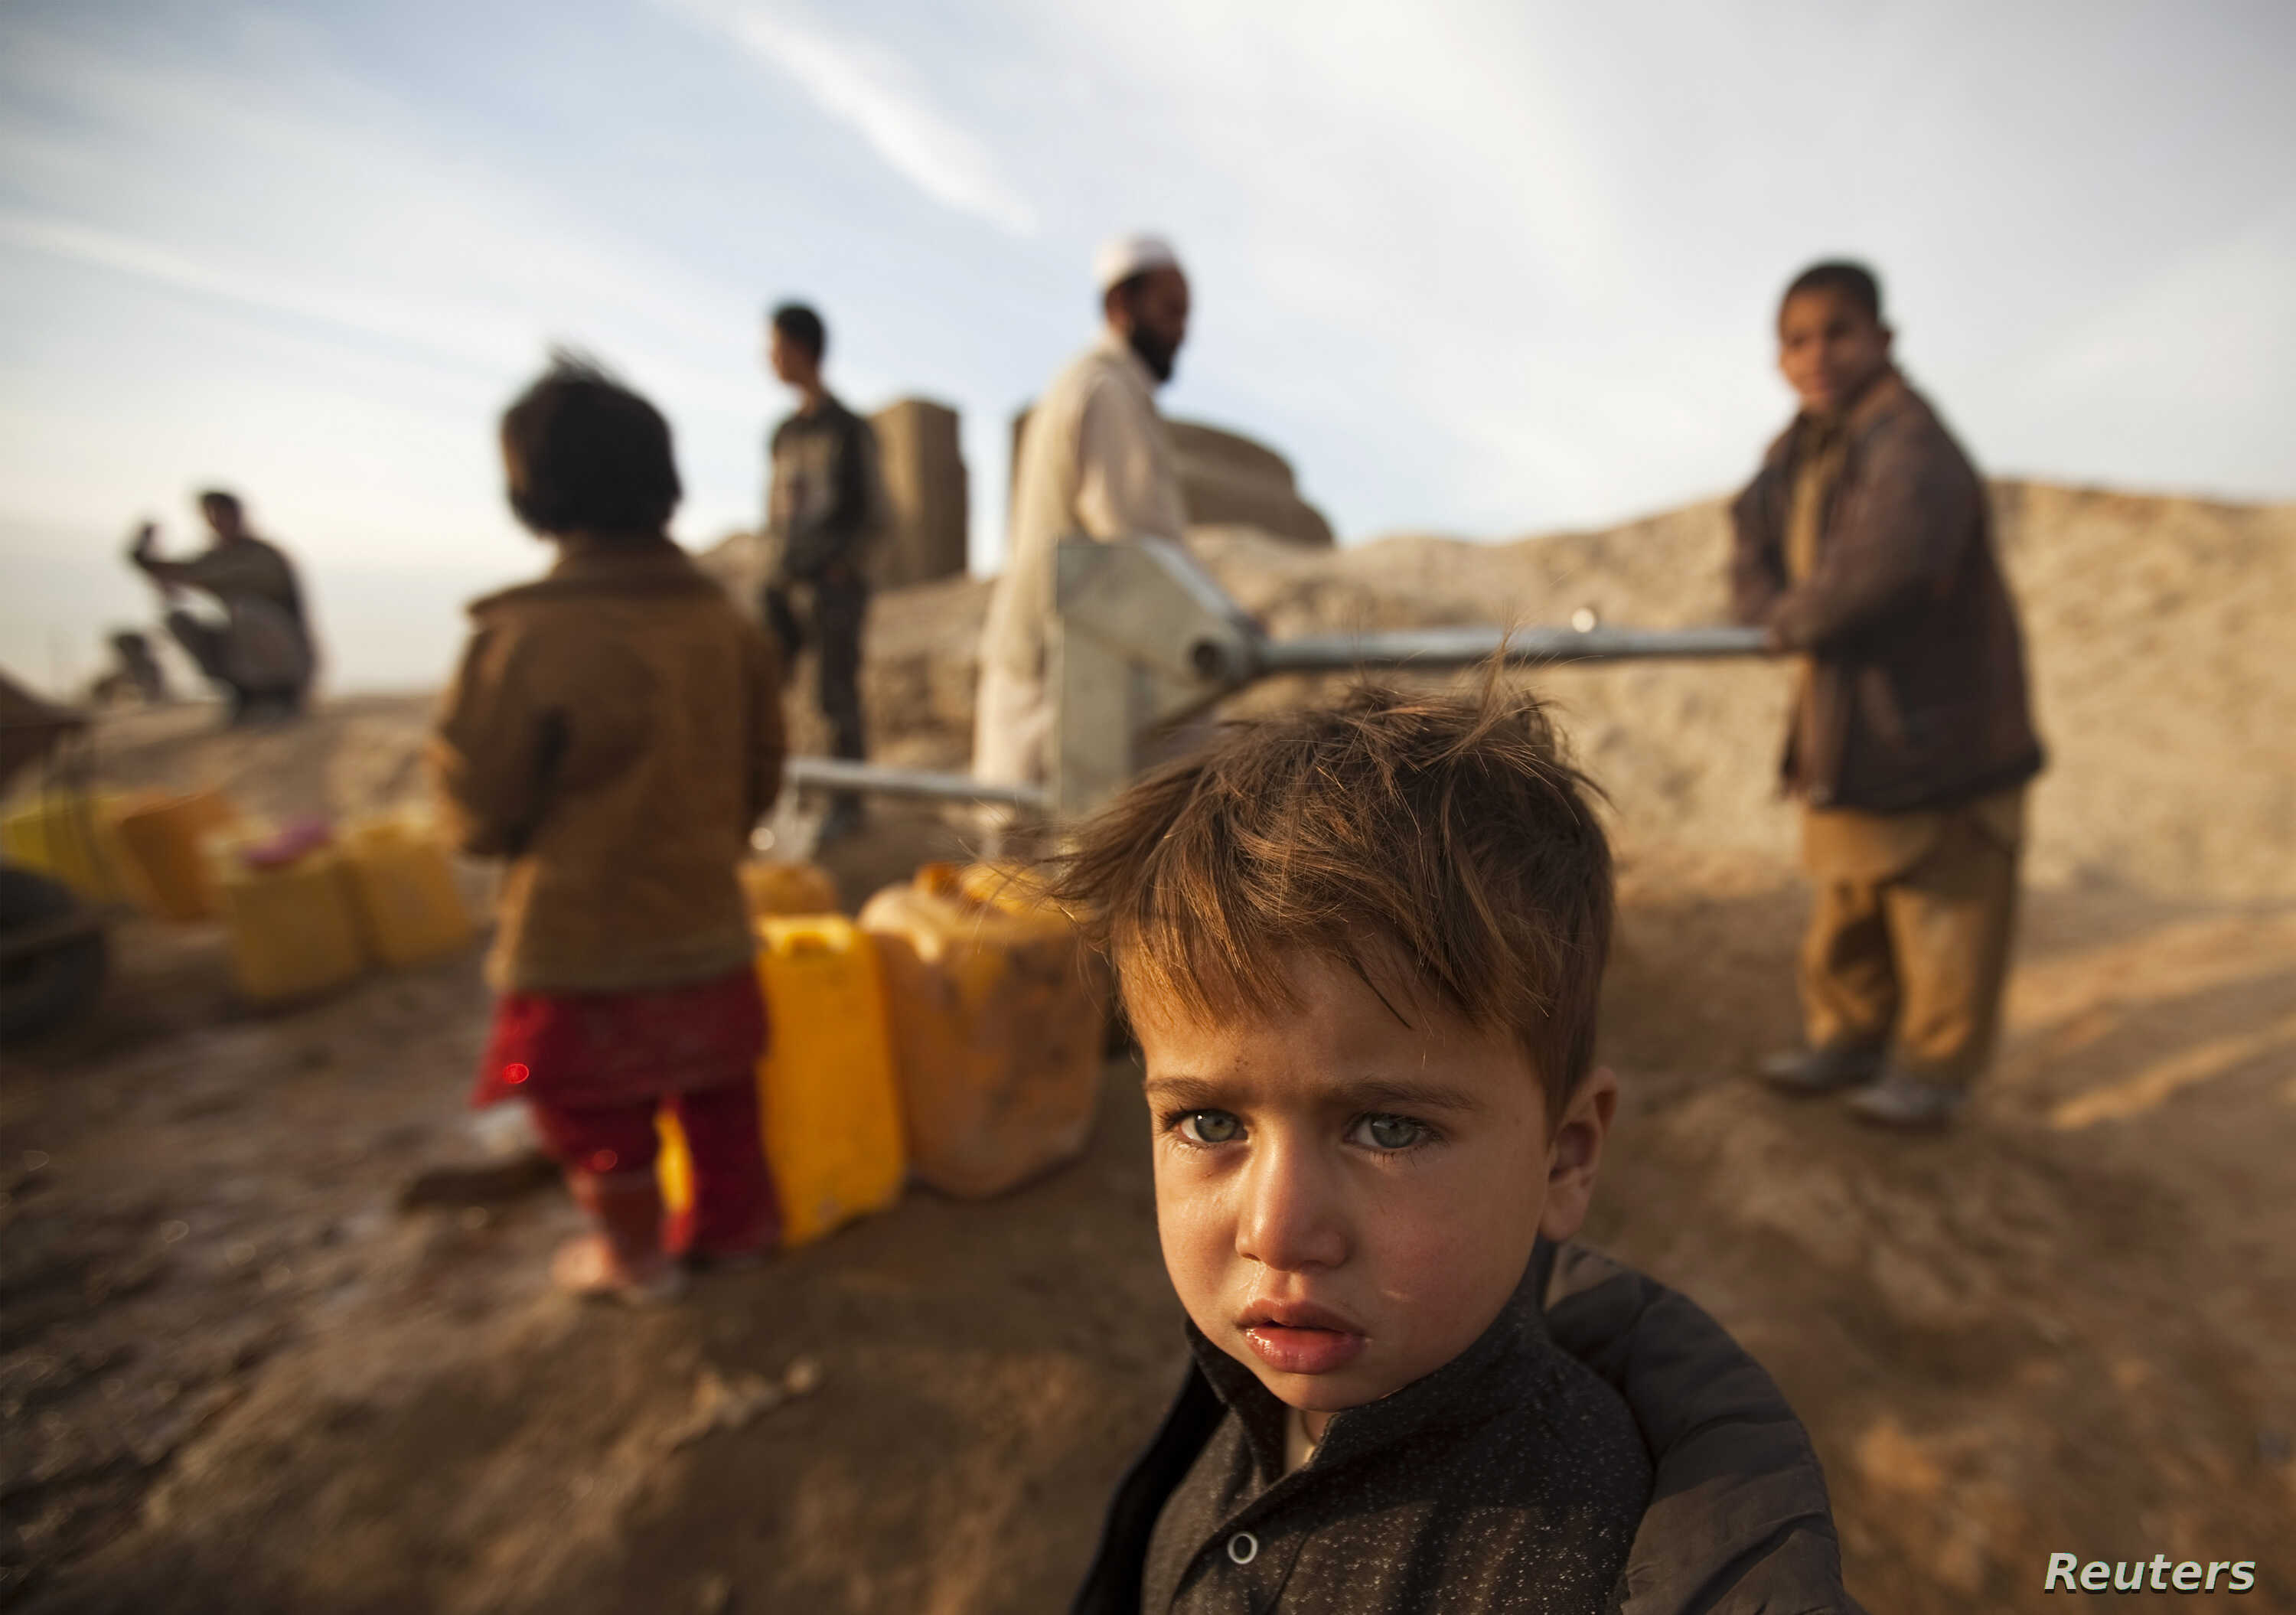 An Afghan boy stands near a public water pump in Kabul January 13, 2010. Nearly half way through the Afghan winter, unusually warm and dry weather is raising fears of a drought.